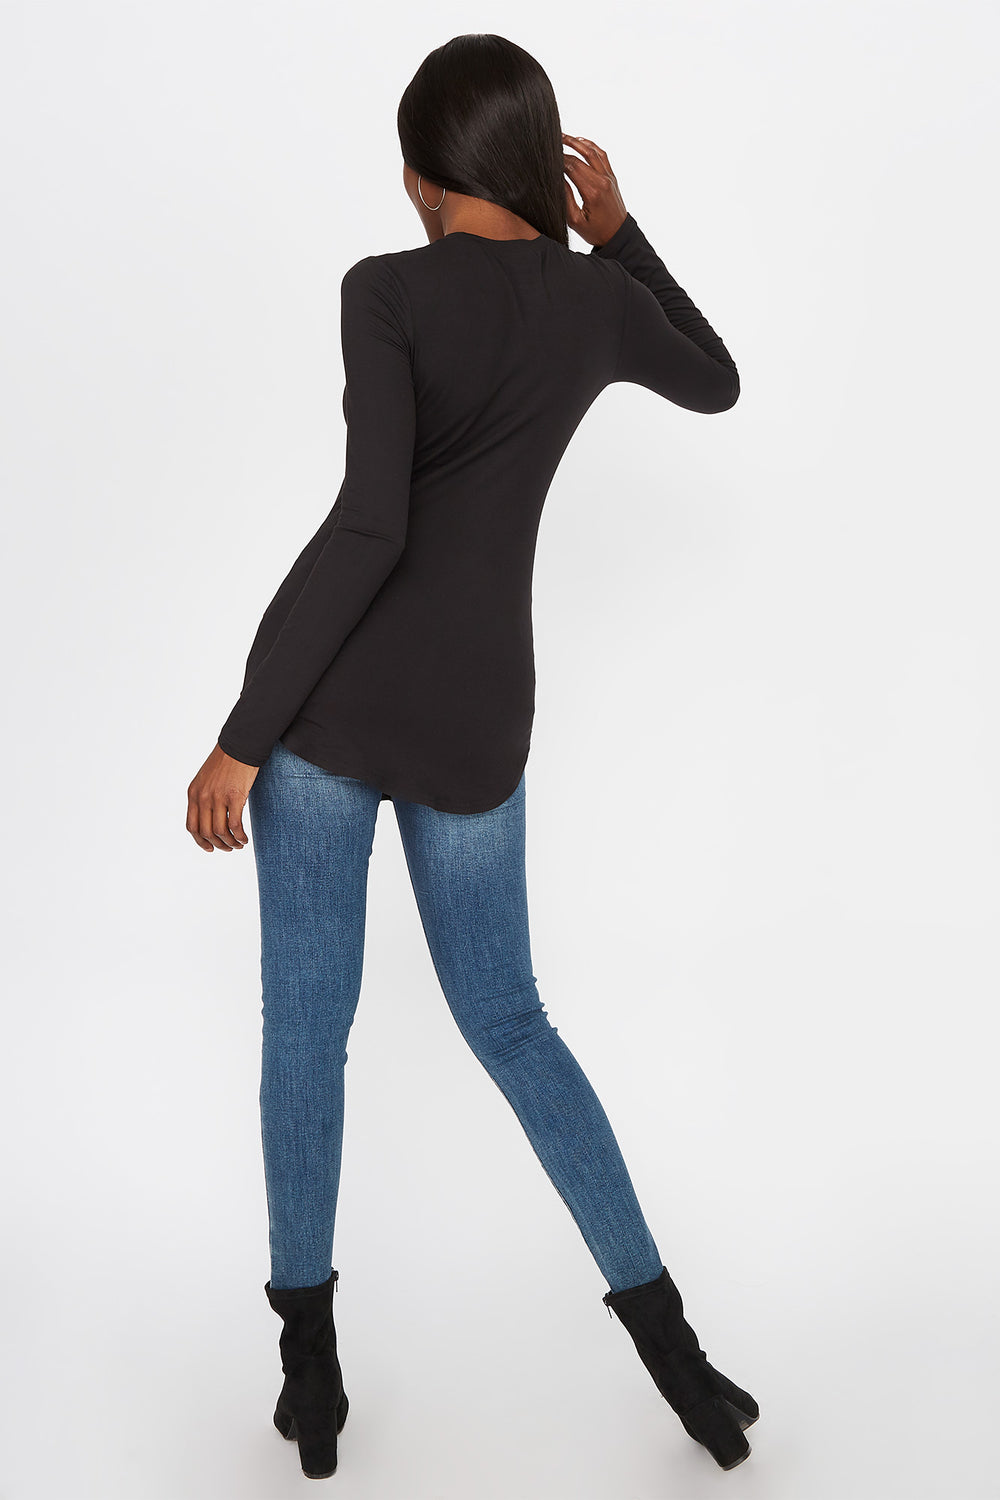 Longline Crew Neck Long Sleeve Black